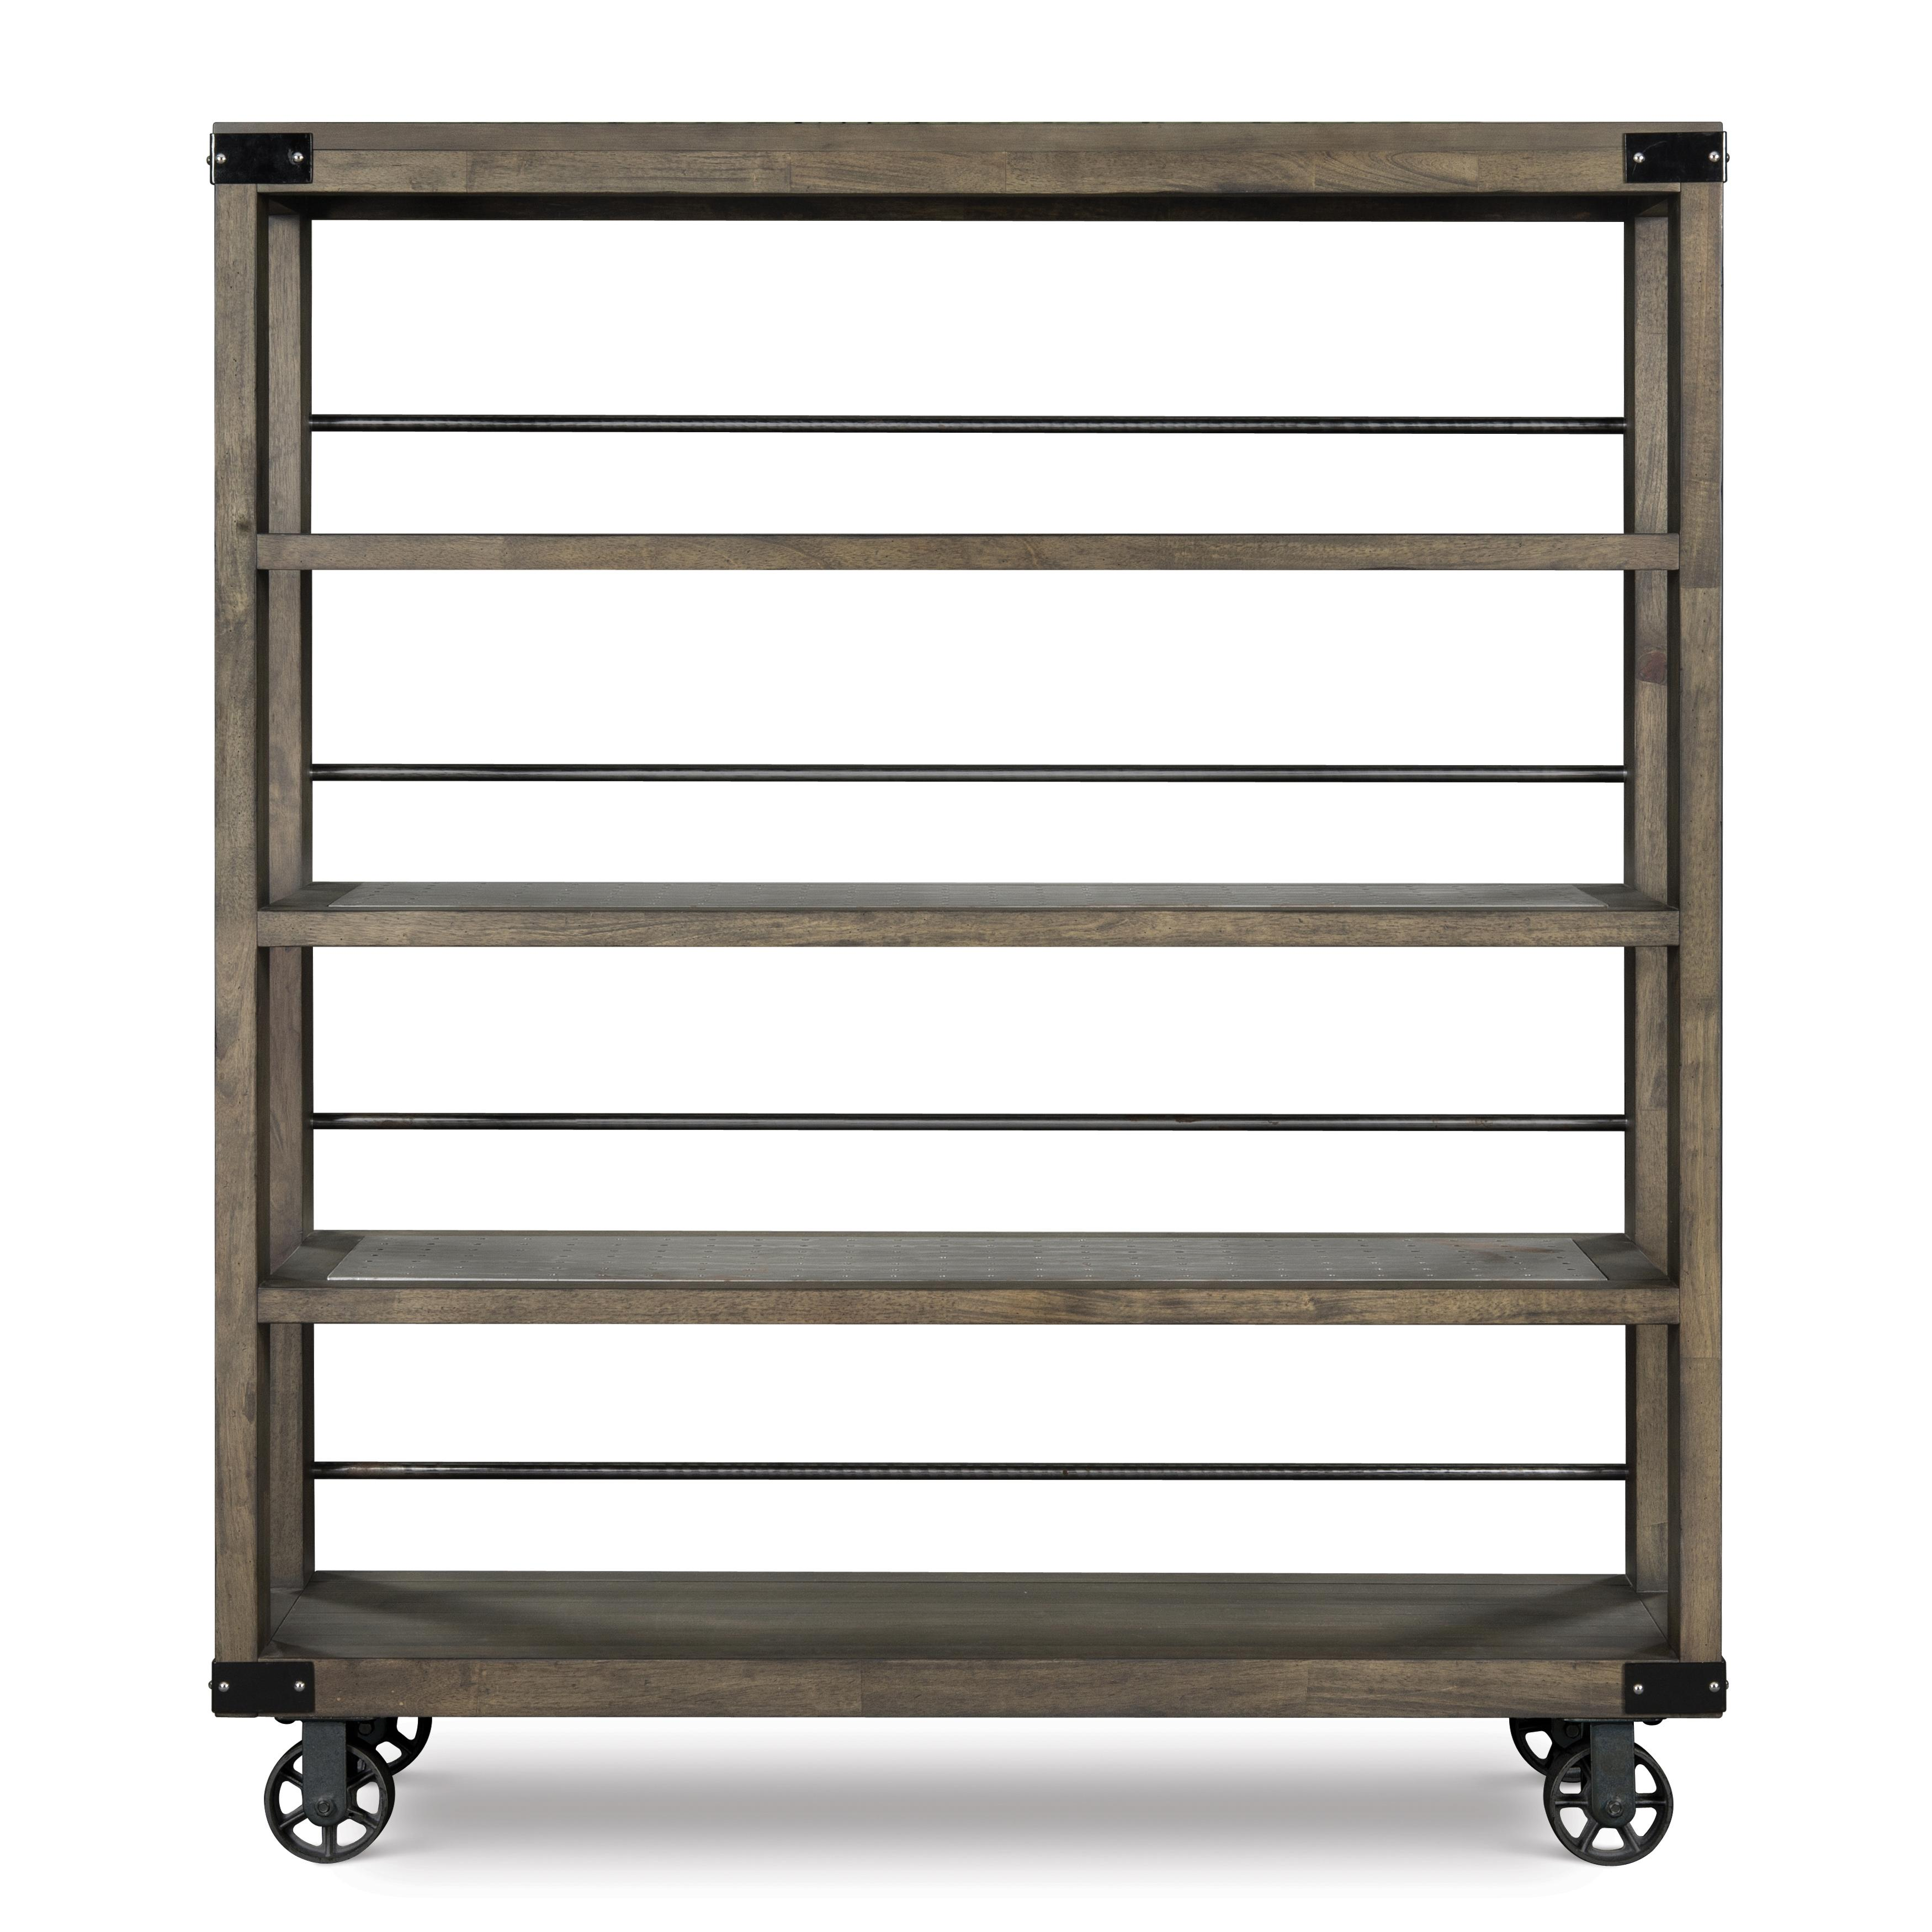 Belfort Select Karlin Dining Cart - Item Number: D2471-17